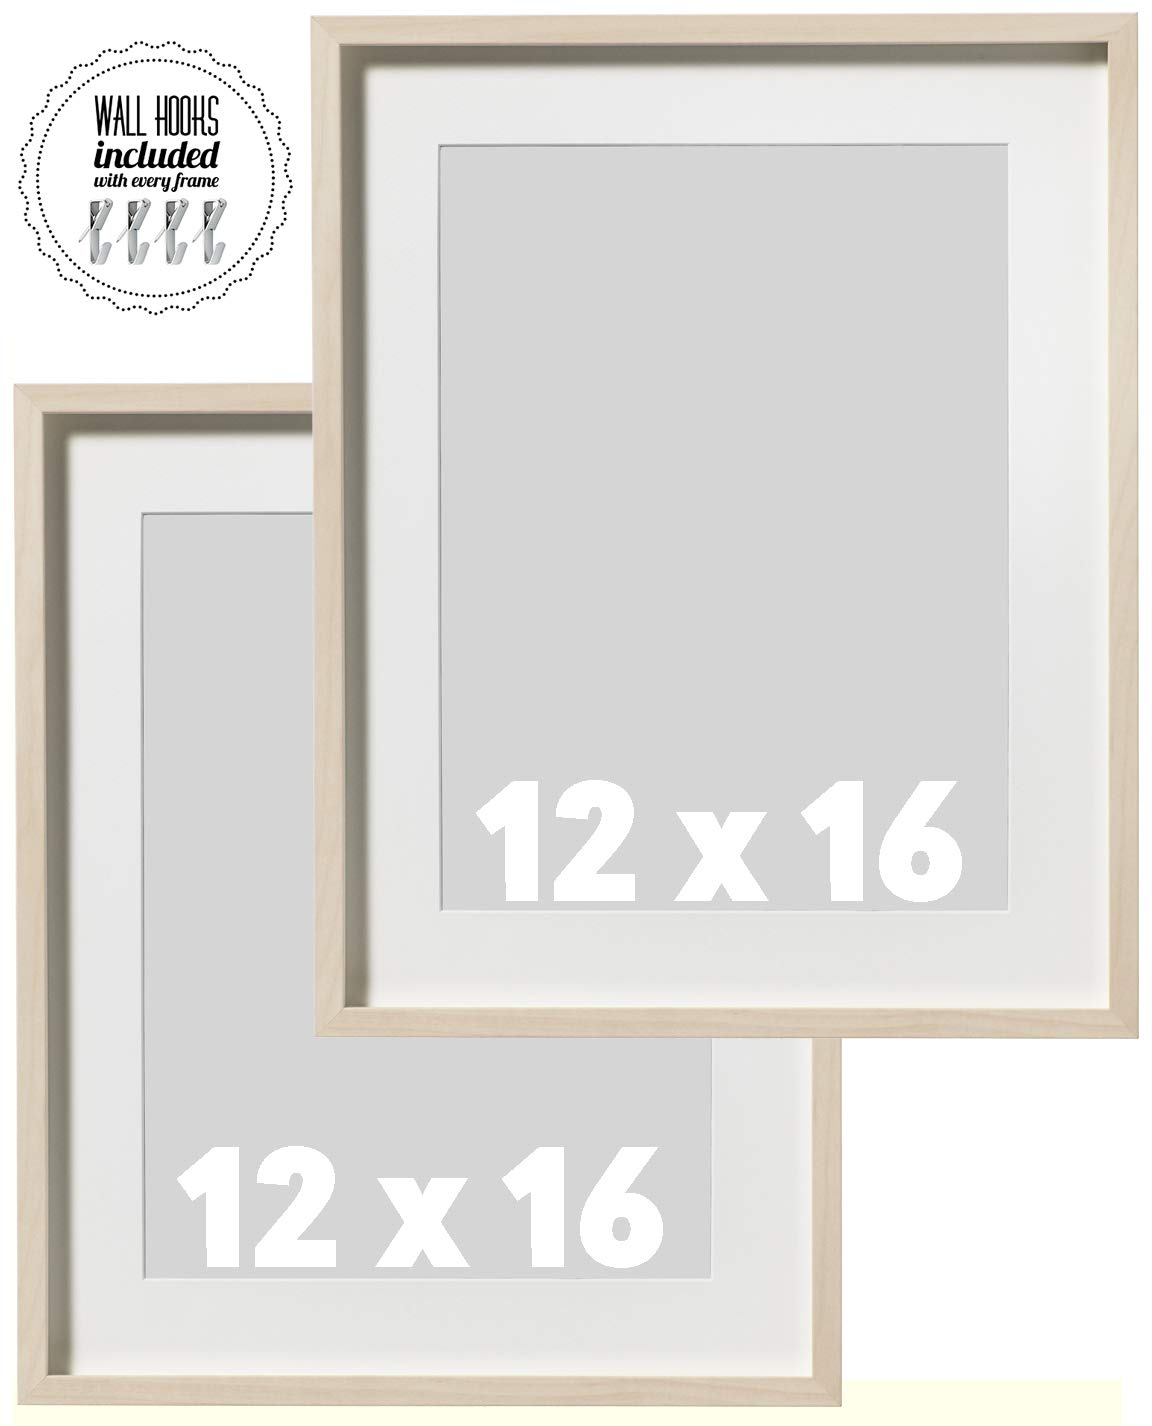 IKEA Wall Picture Frame Natural Birch Wood Color - 12 x 16 inches - 12x16 Picture Frames Wall Decor | Family Portrait - Includes 30lb Metal Wall Hang Fixtures - Natural Brown Wood''Hovsta''